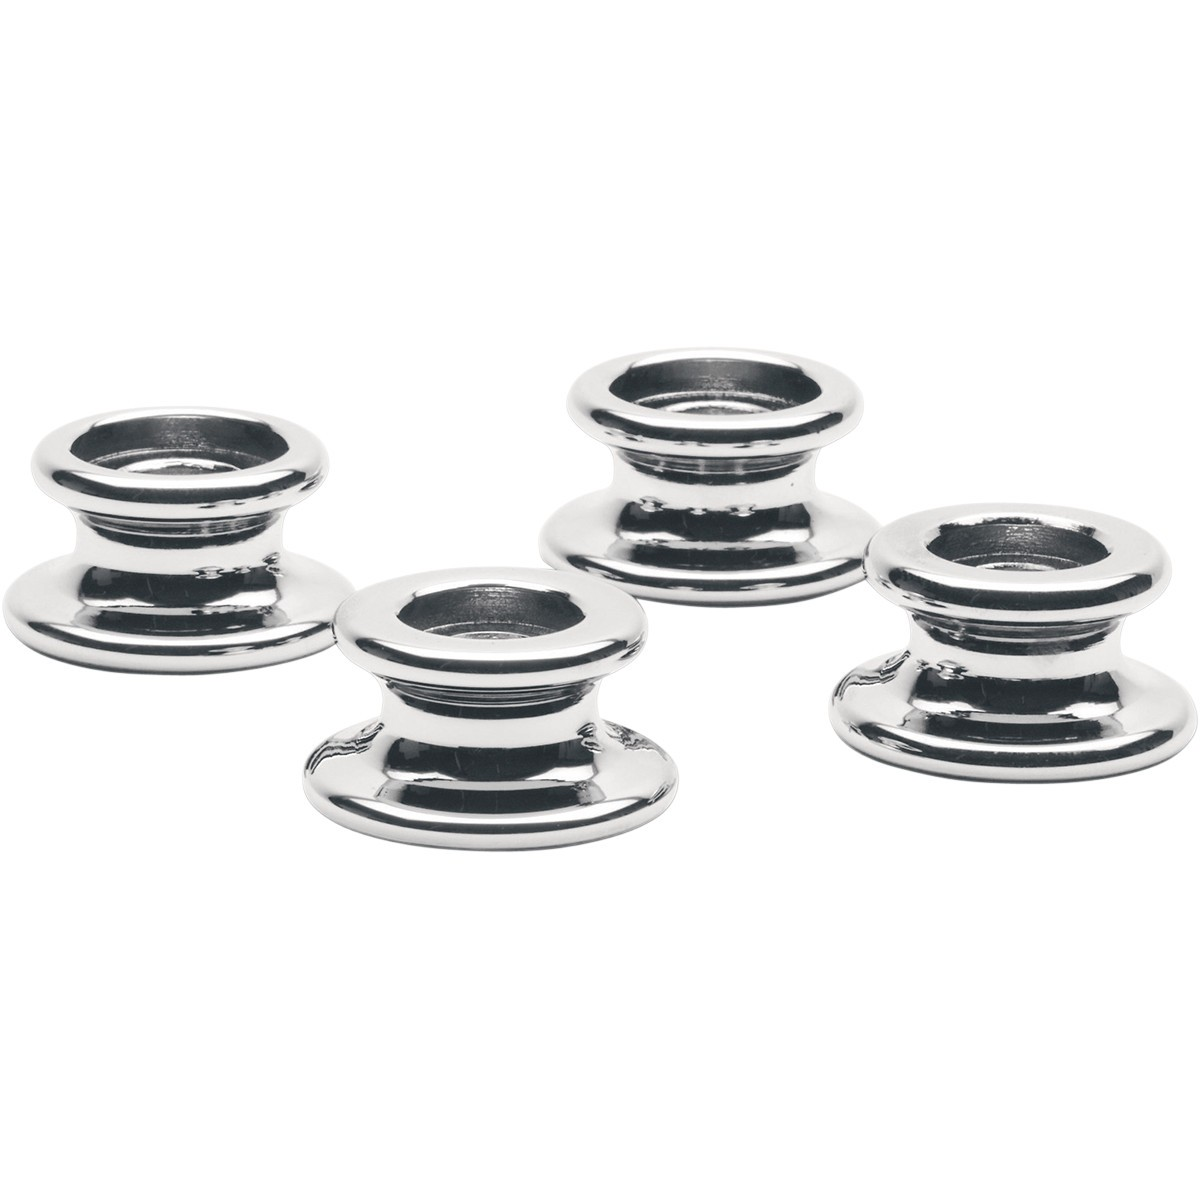 Get it delivered to your door - COBRA Bungee Knobs for 2004-2009 Honda VT750C Shadow Aero - 02-7118 - 1350 (EGP)